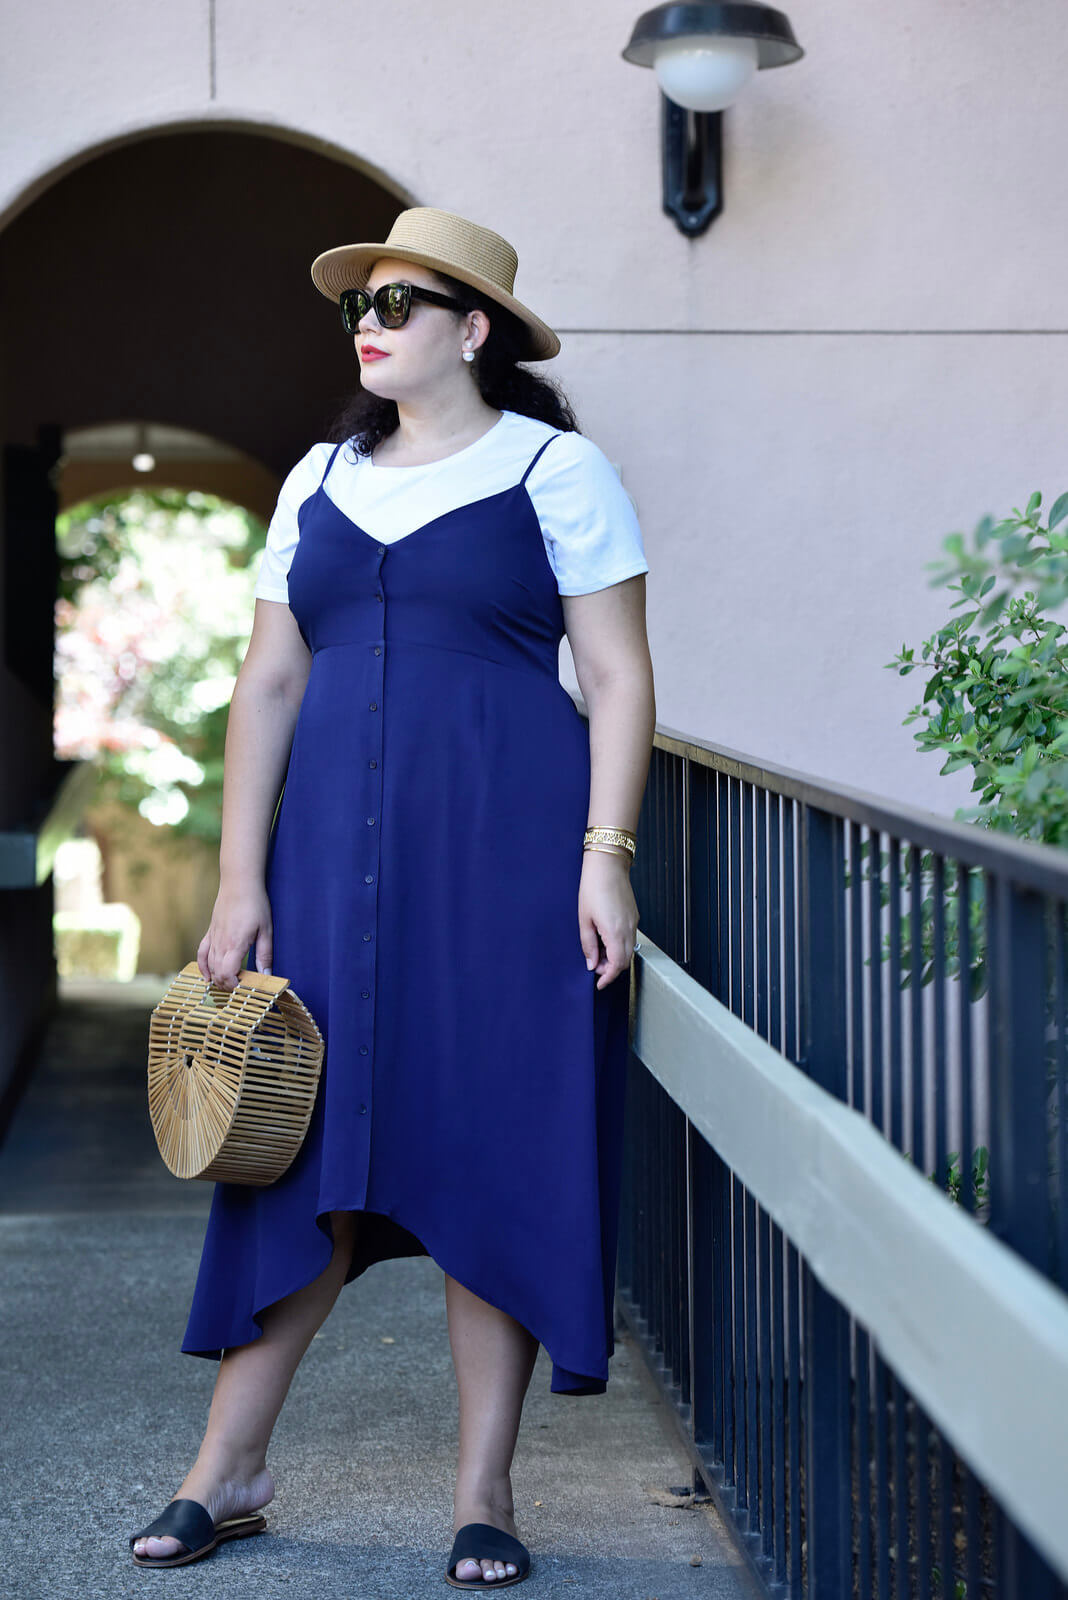 How to Modestly Wear a Spaghetti Strap Dress @GirlWithCurves